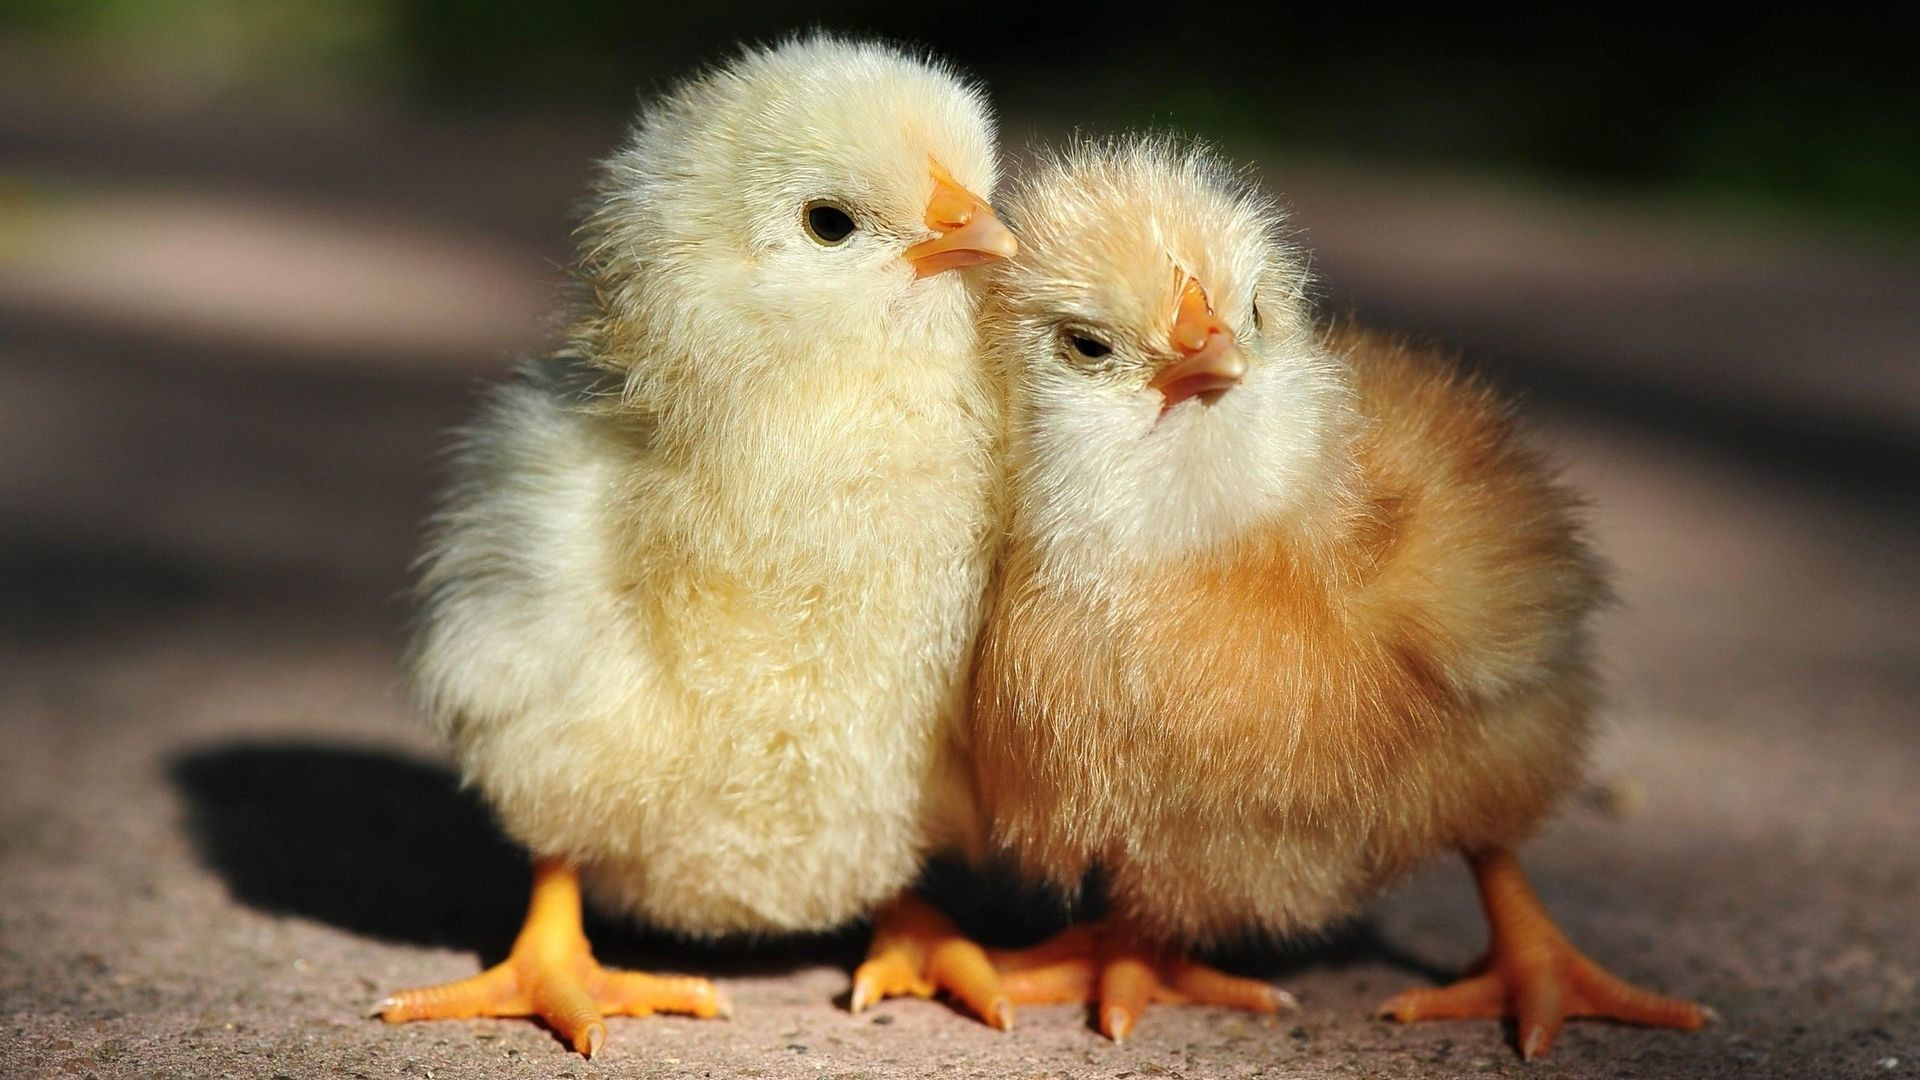 47 Baby Chicks Wallpapers on WallpaperPlay 1920x1080